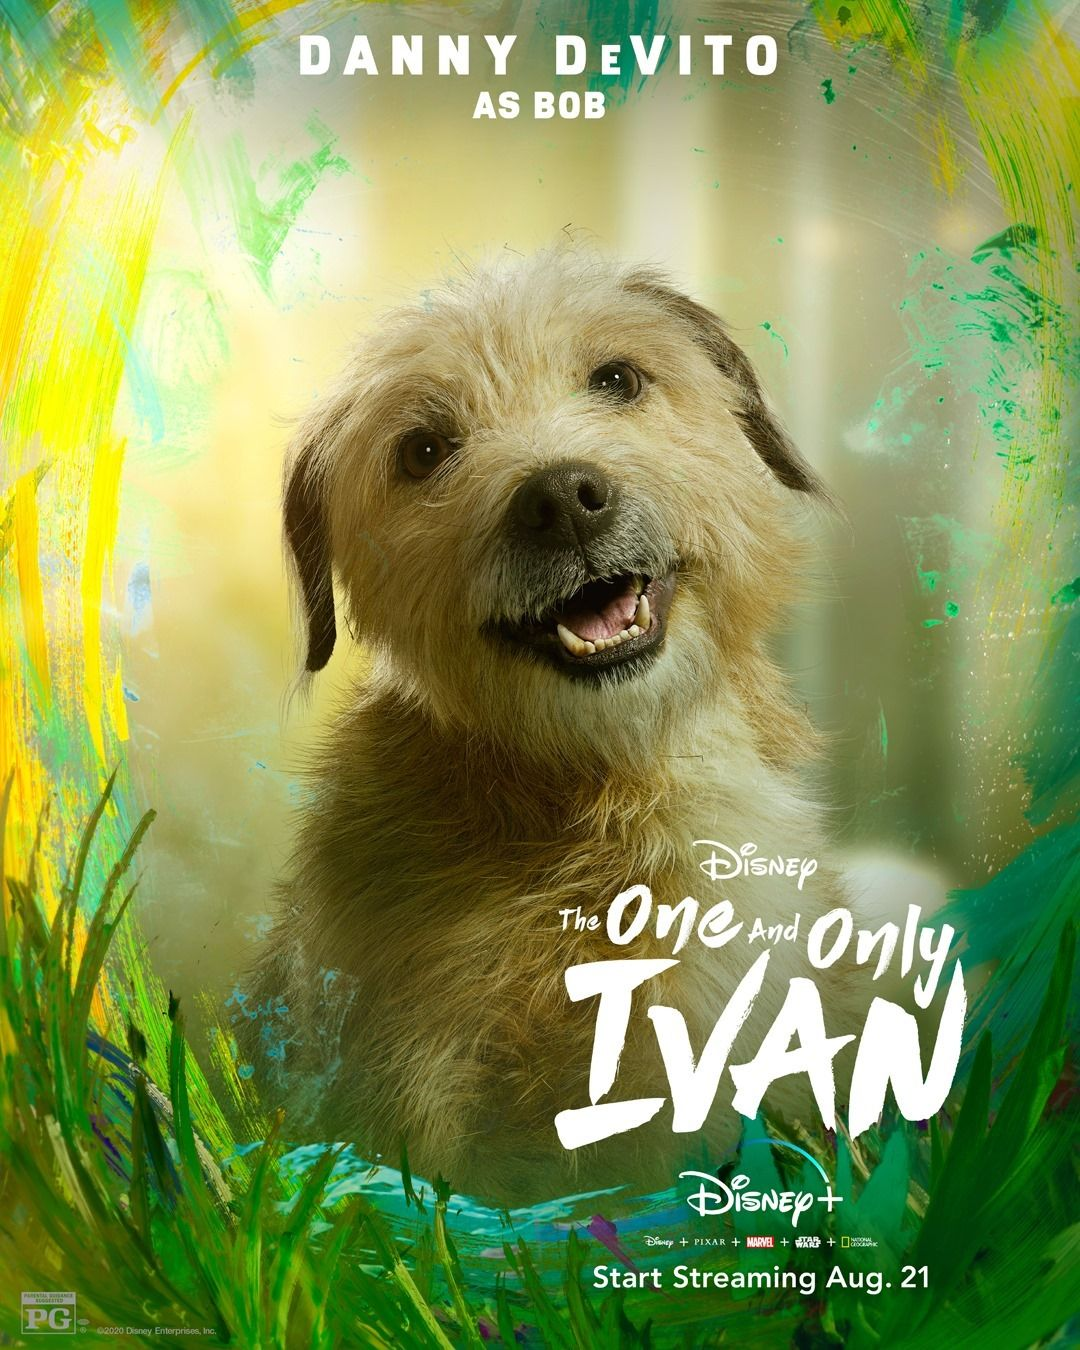 The One and Only Ivan Poster 9: Full Size Poster Image